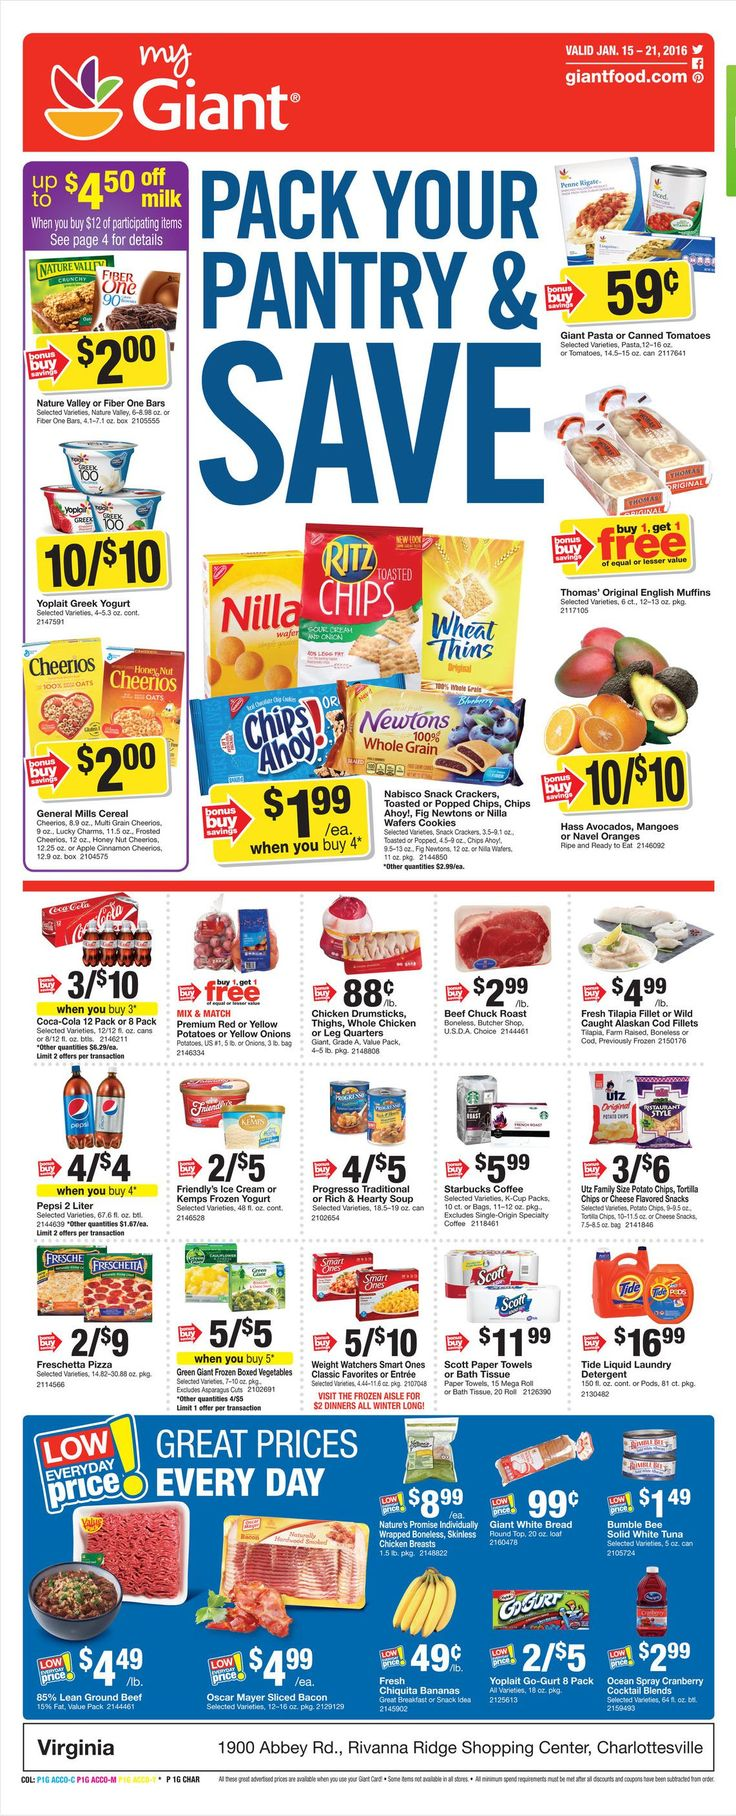 Giant Food Weekly Ad January 22 - 28, 2016 - http://www.olcatalog.com/grocery/giant-food-weekly-ad.html